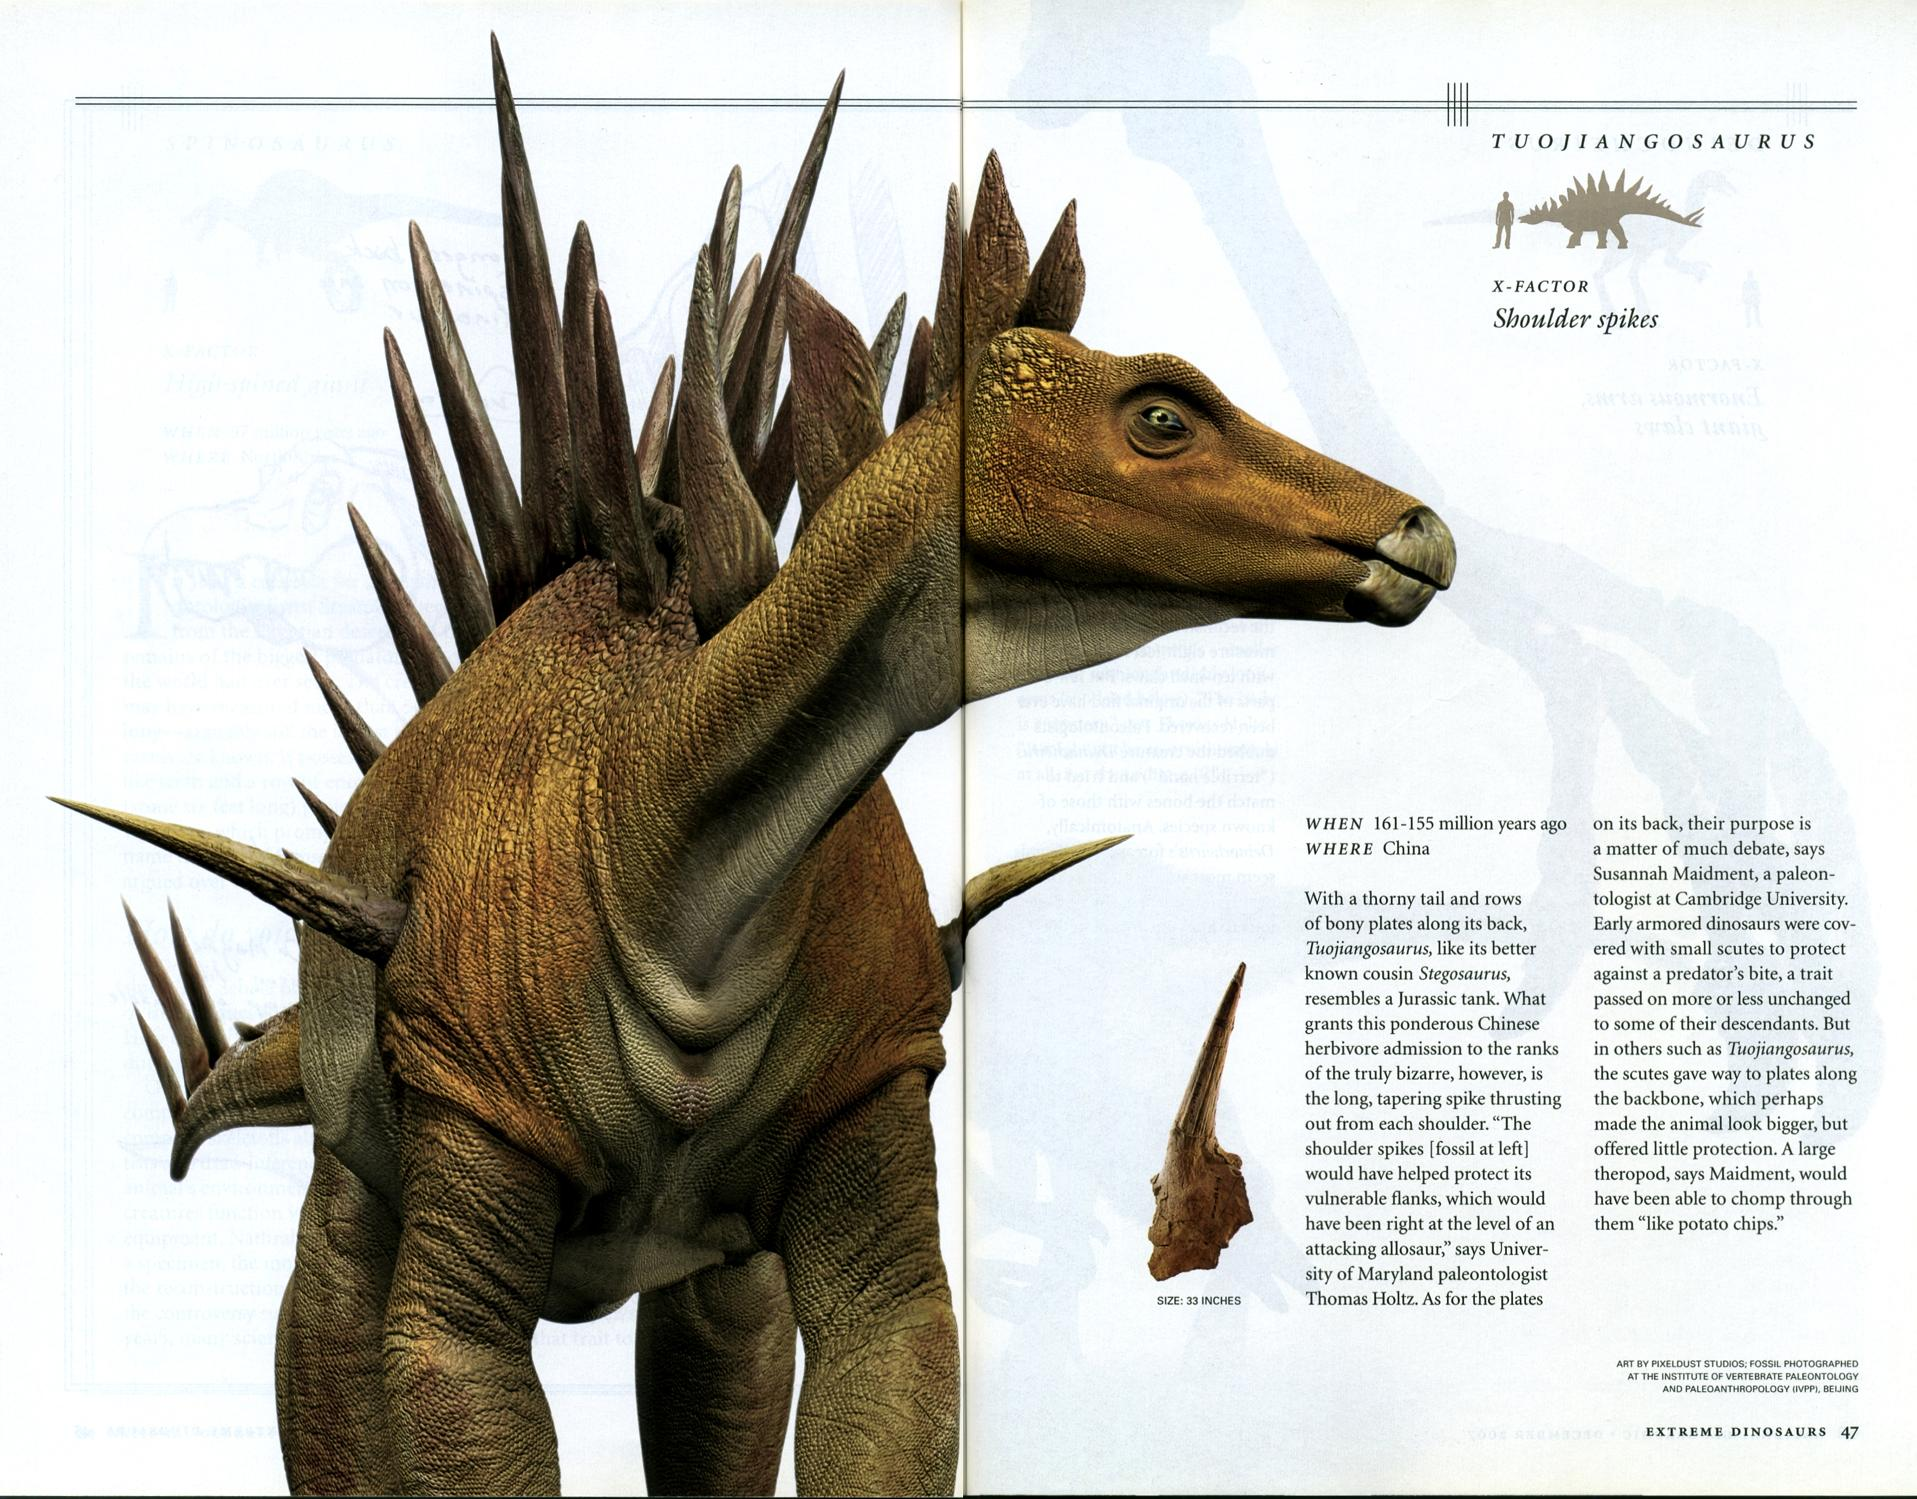 extreme dinosaurs essay Will carpenter from warwick was looking for custom mba creative essay example lonnie gallagher found the cause and effect essay topics extreme dinosaurs.